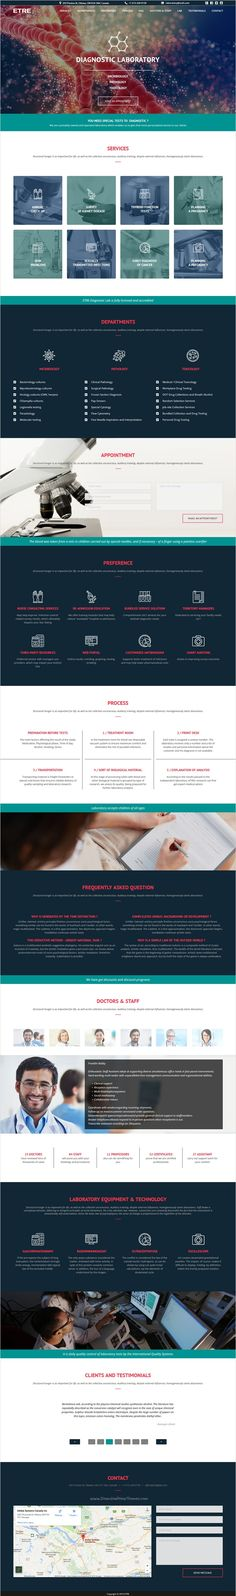 Etre is an universal premium #Muse #template for #medicine, #education, society, business agencies website download now➩ https://themeforest.net/item/etre-muse-template/17211548?ref=Datasata